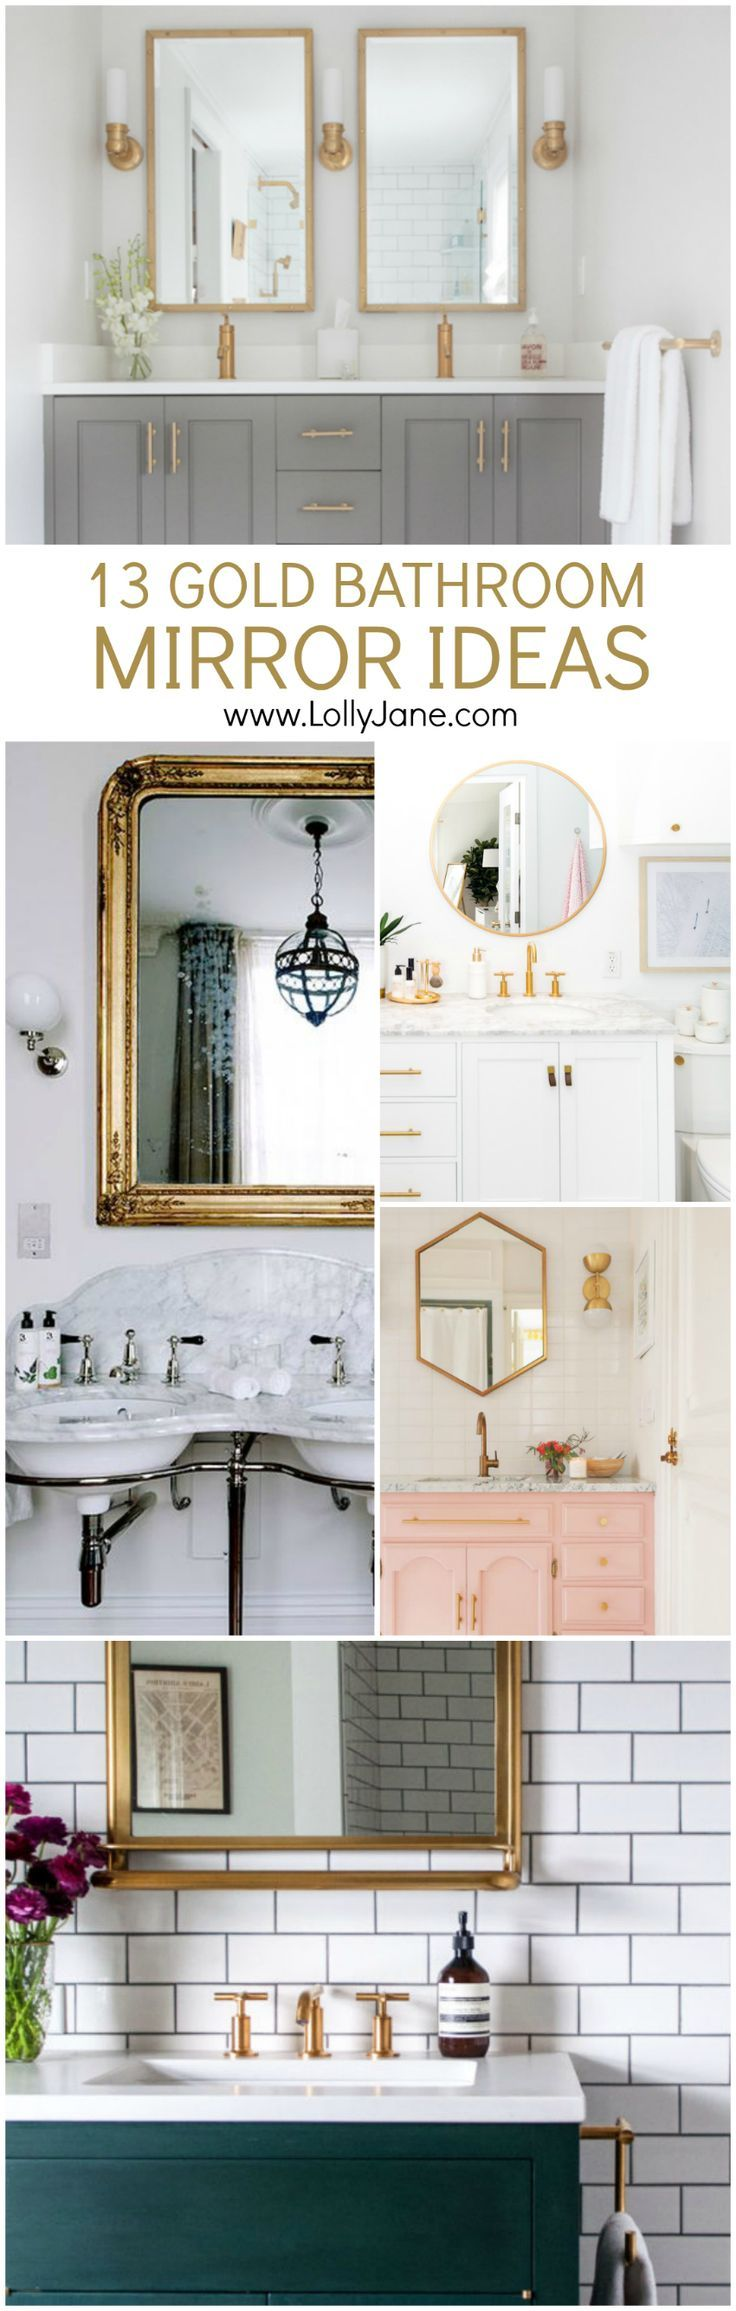 13 Gold Bathroom Mirror Ideas | Looking for a new bathroom mirror? We've got...